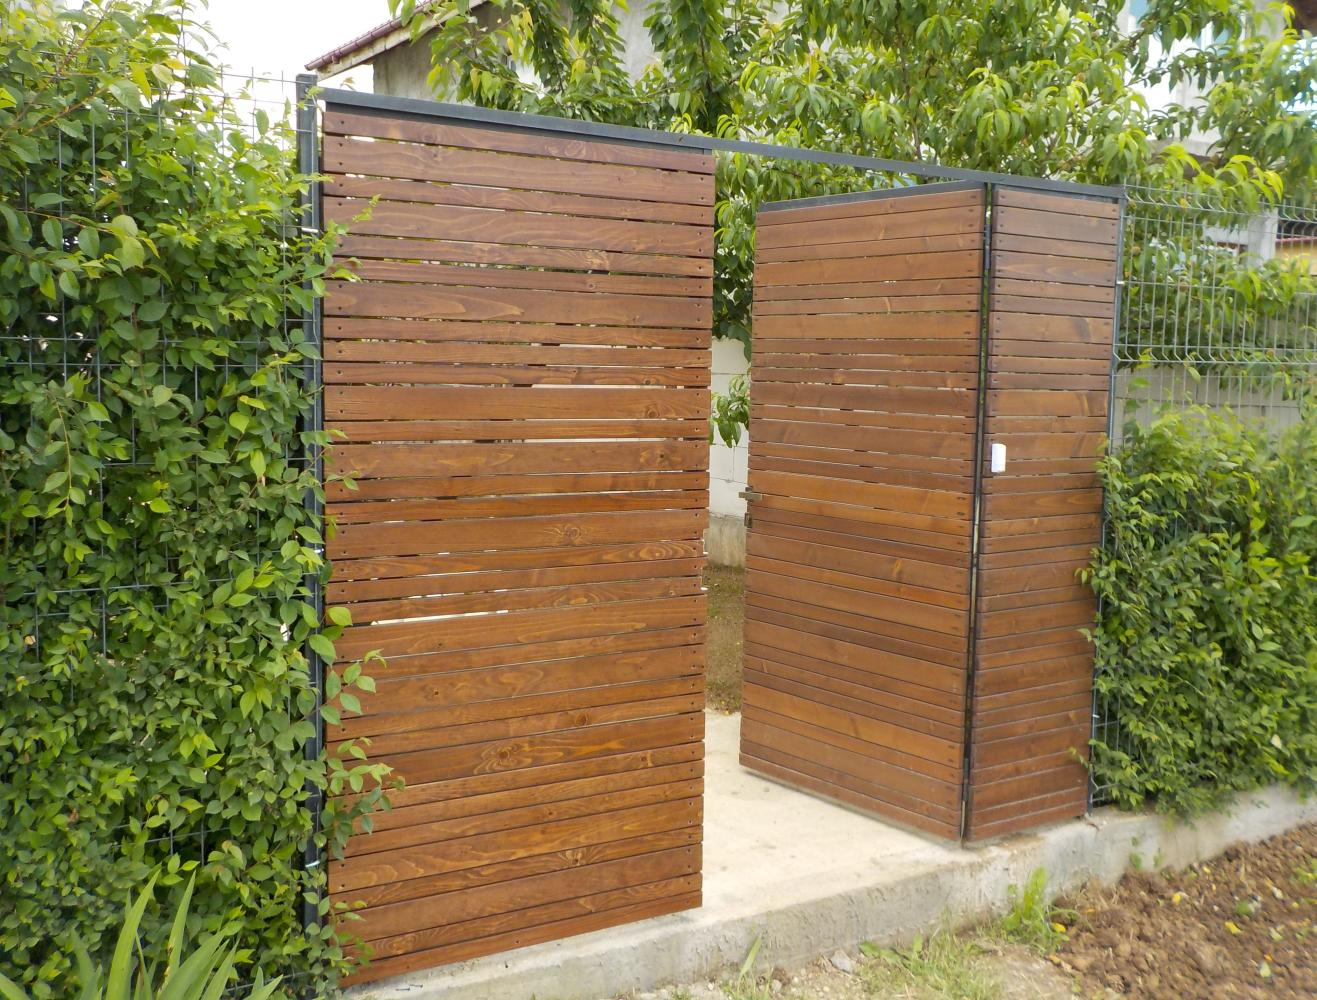 the wooden gate built on steel tubing frame